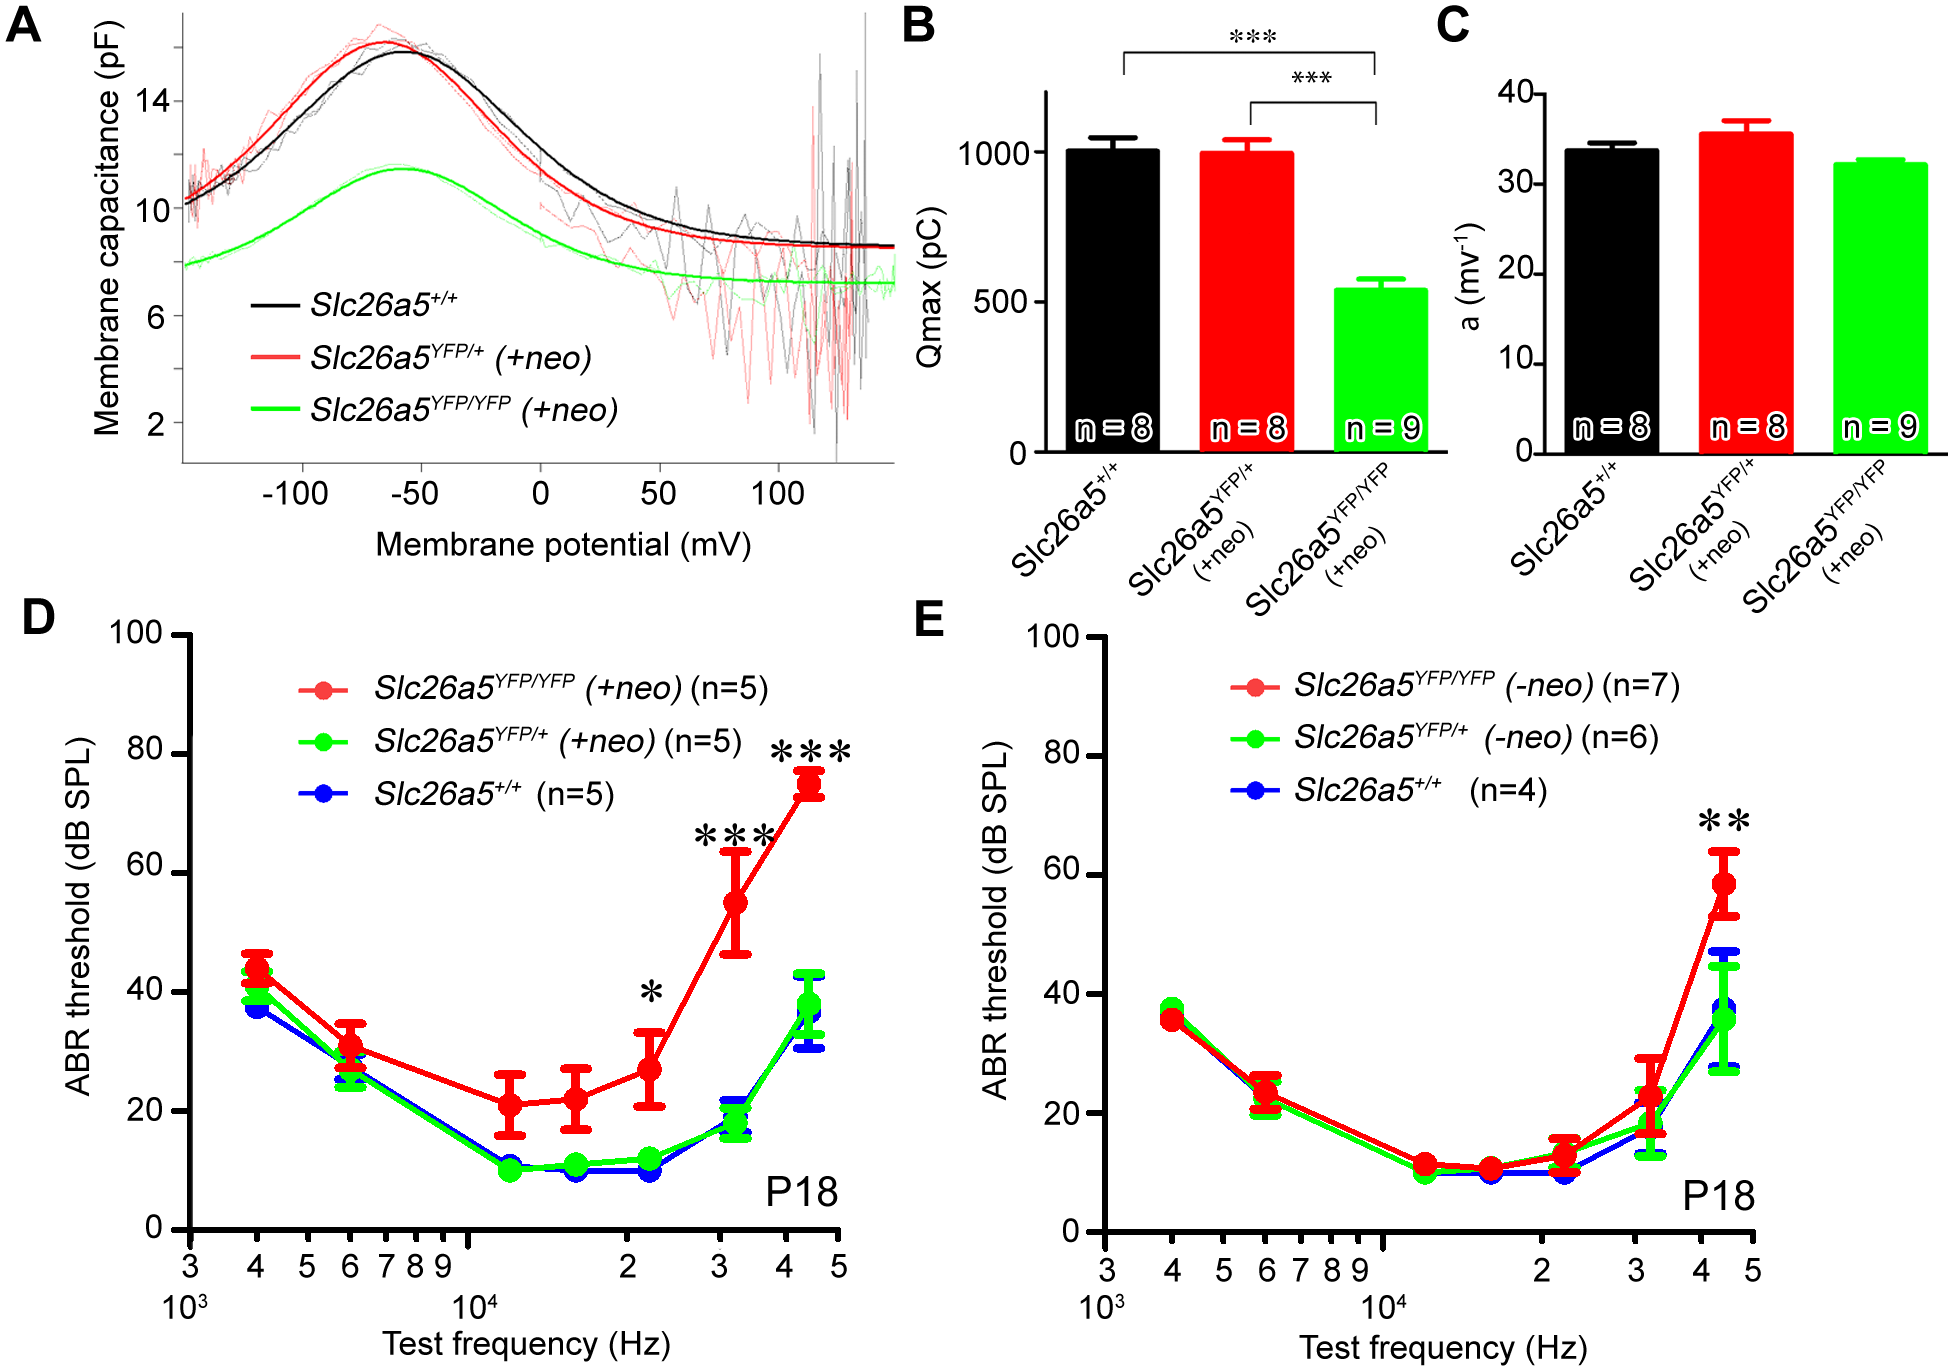 Slc26a5-YFP is functional in Slc26a5-YFP mice <i>(+neo)</i>.